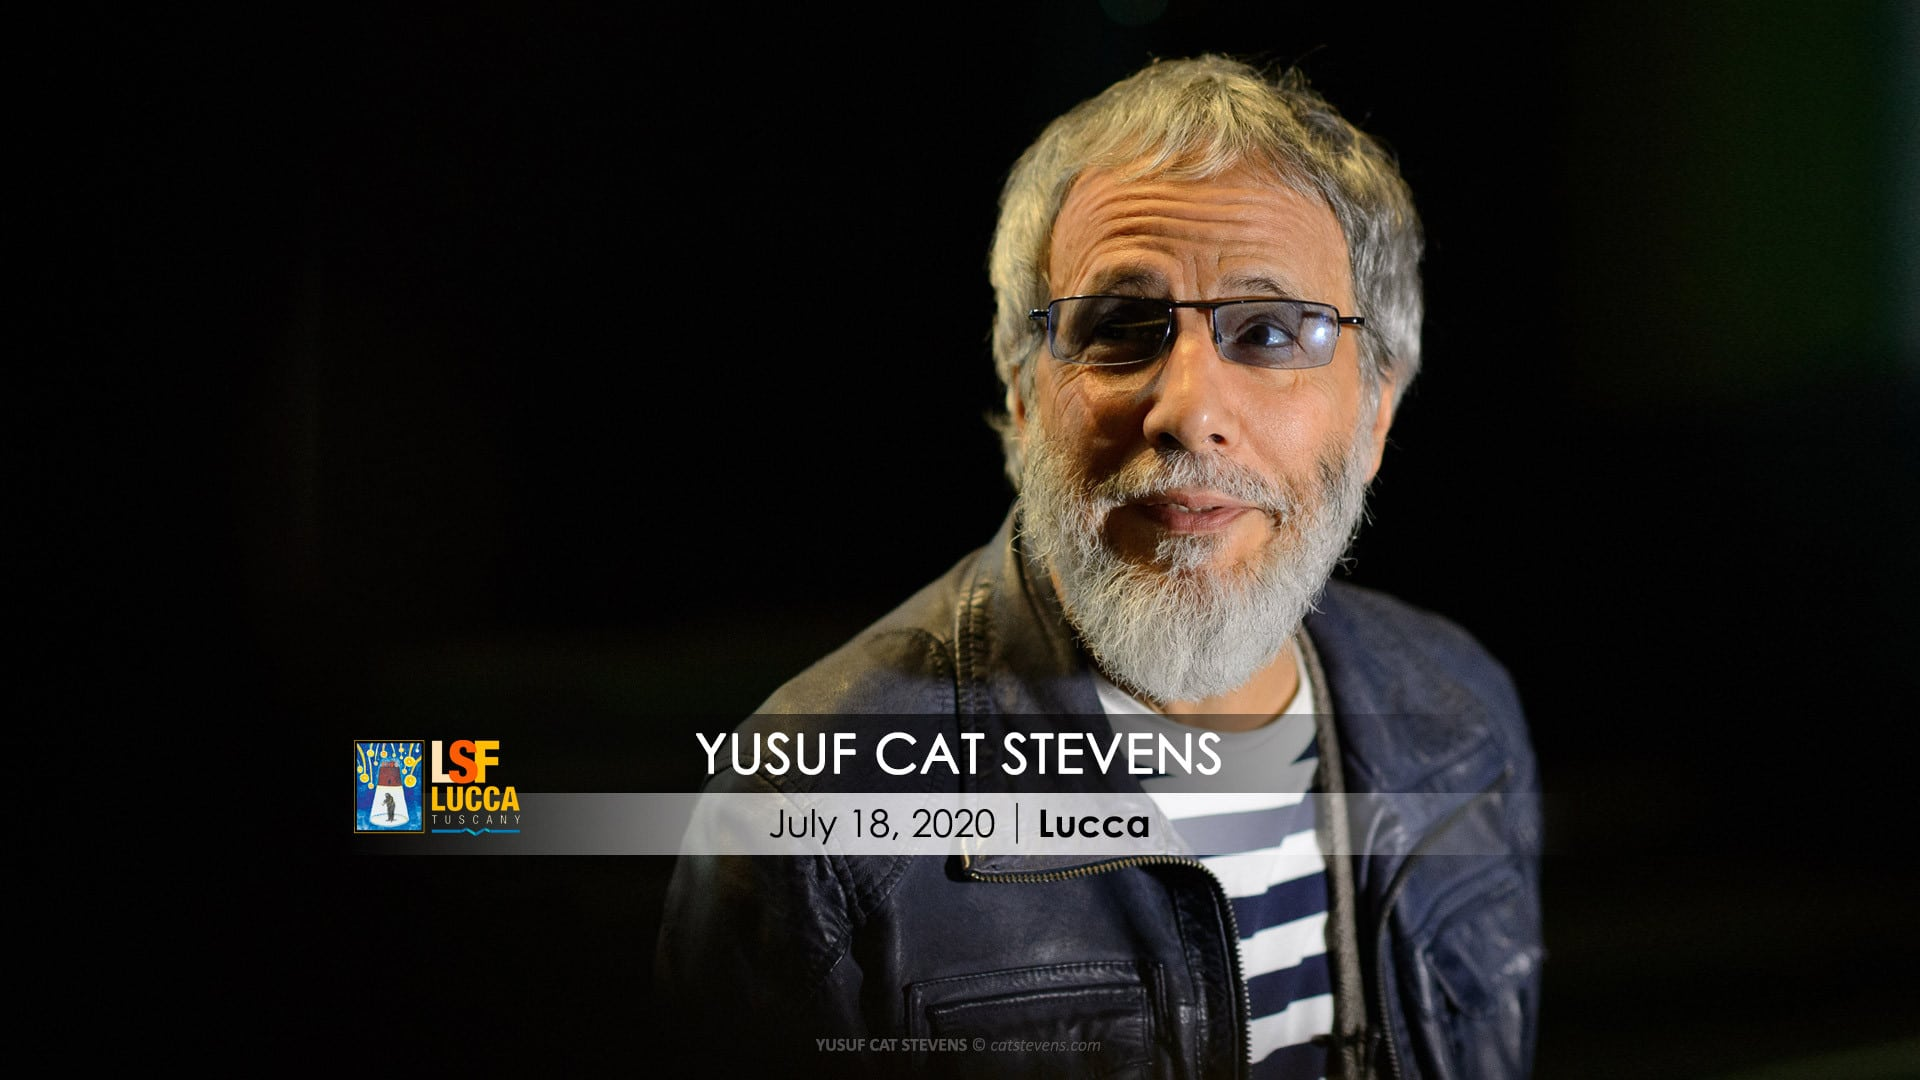 Cat Stevens Tour 2020.Yusuf Cat Stevens July 18 2020 Piazza Napoleone Lucca